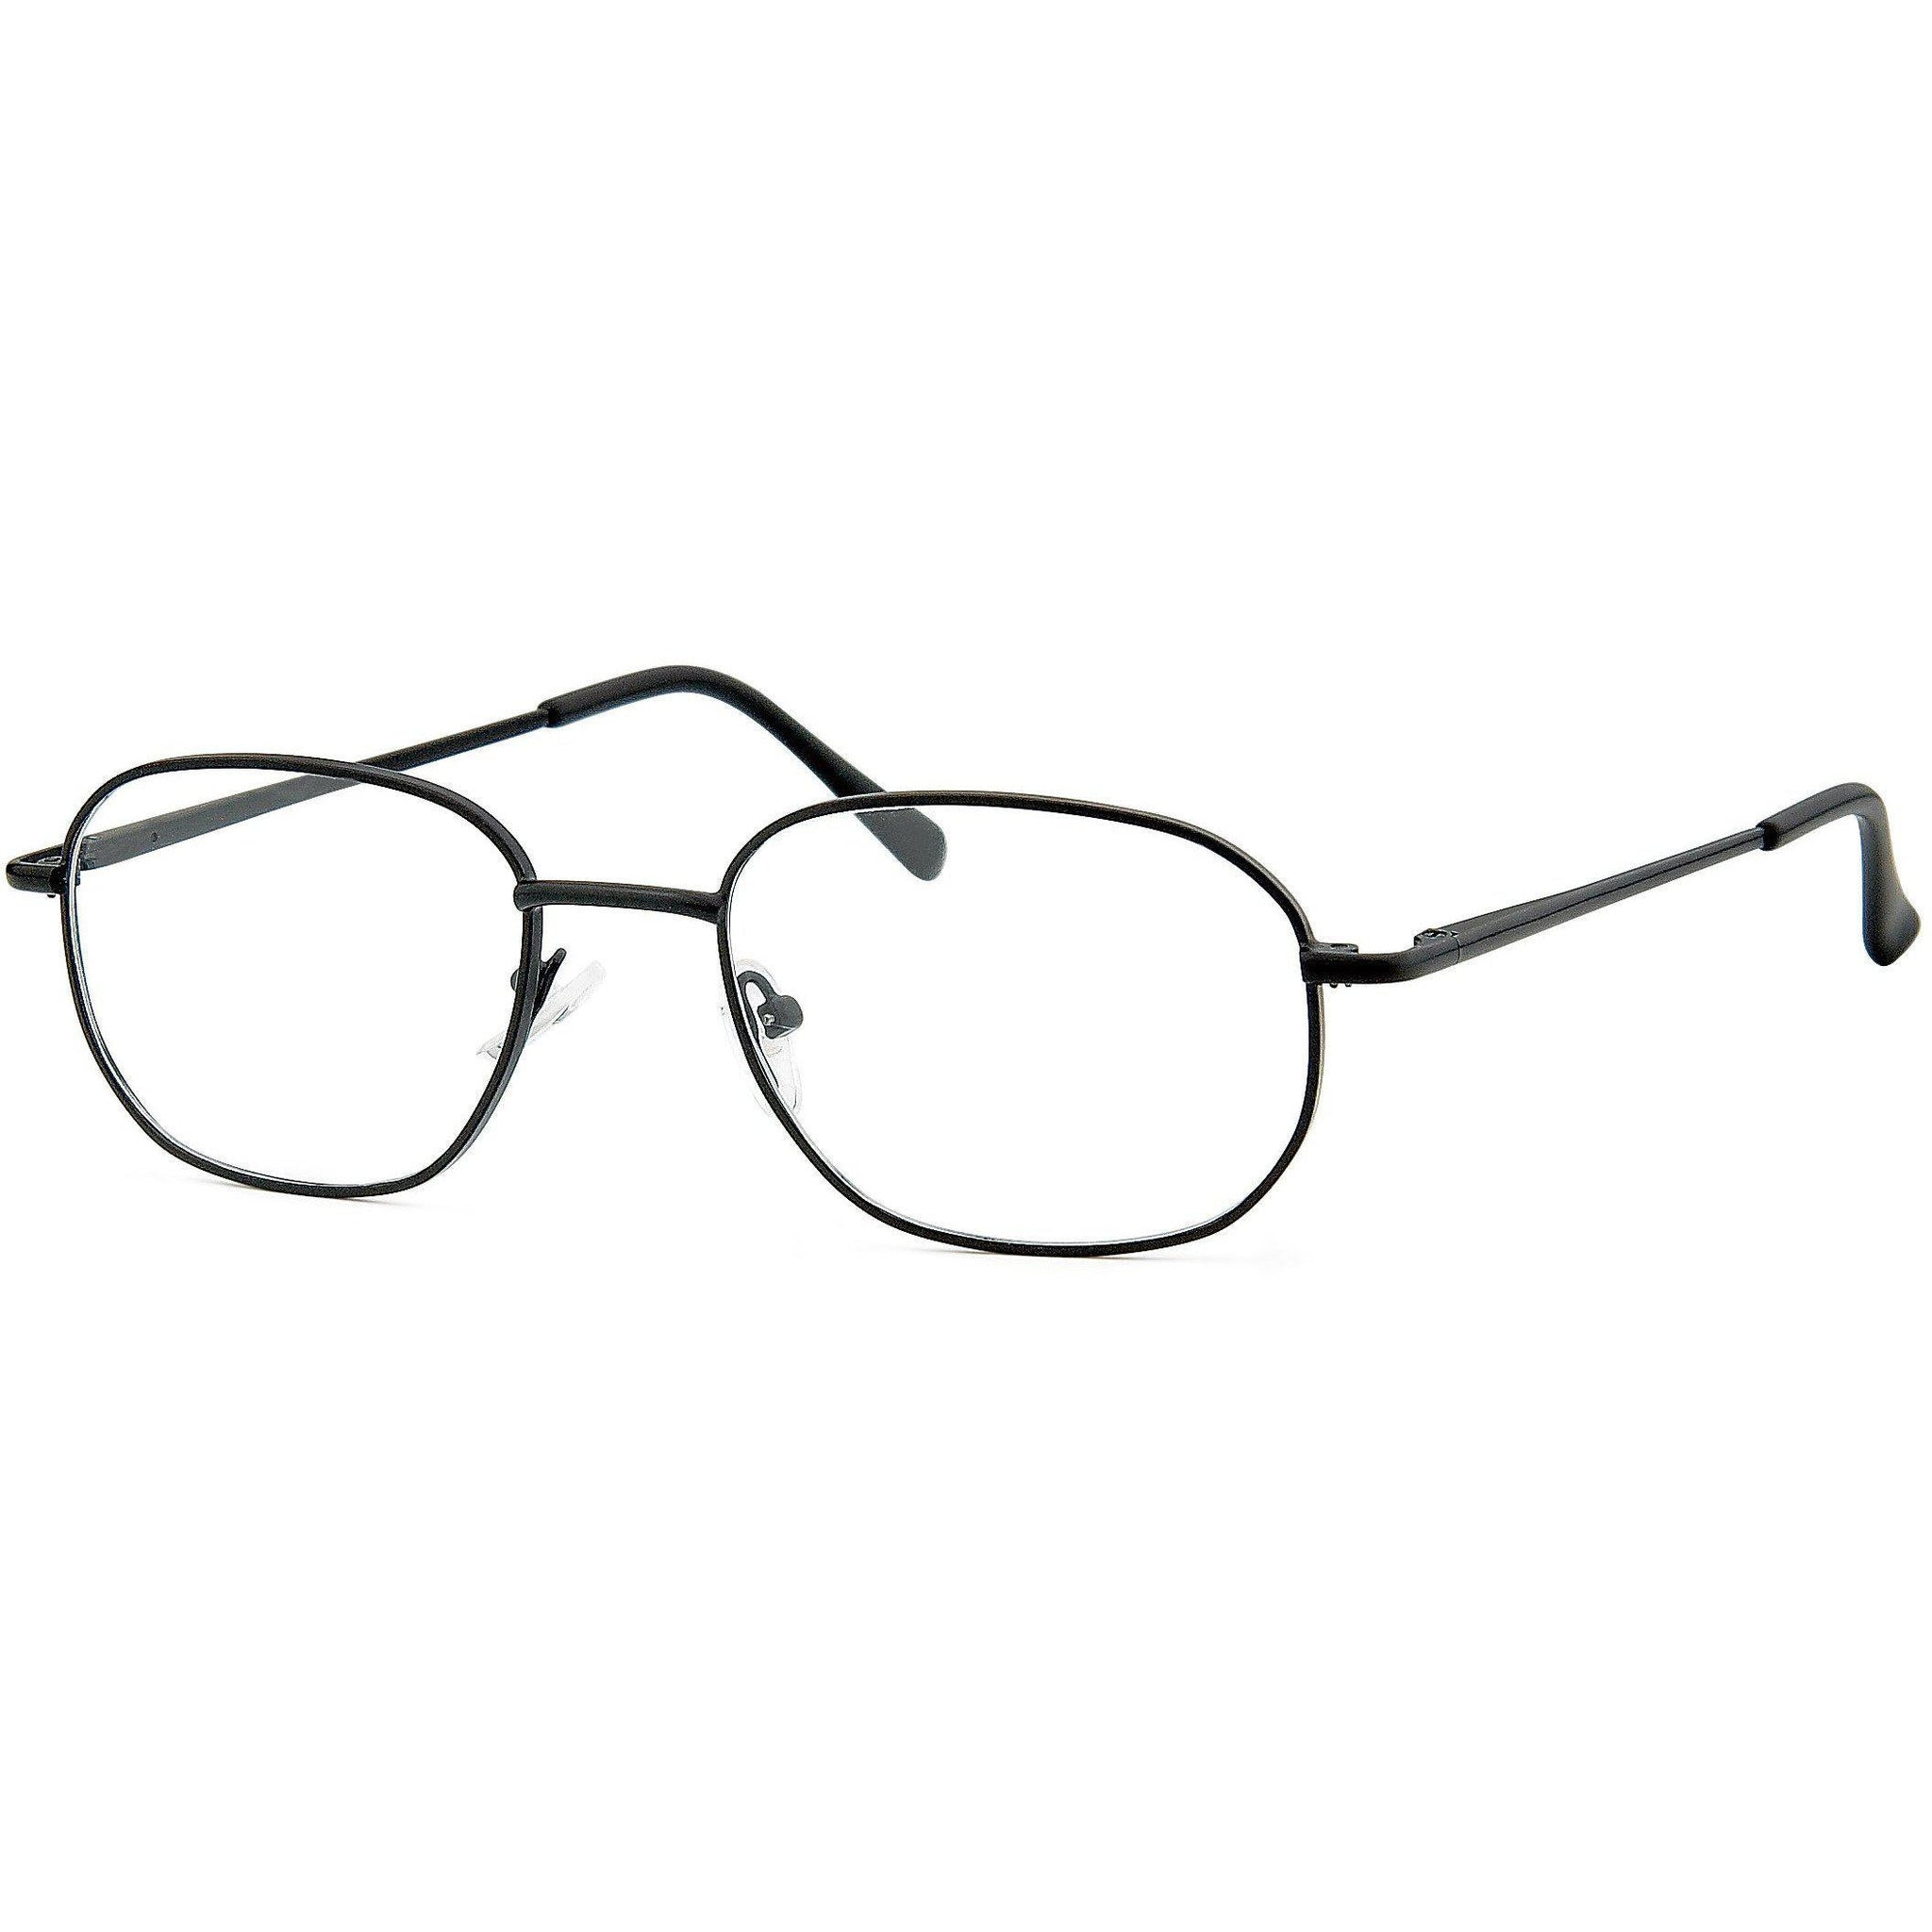 Peckham by The Square Mile Prescription Eyeglasses Frame